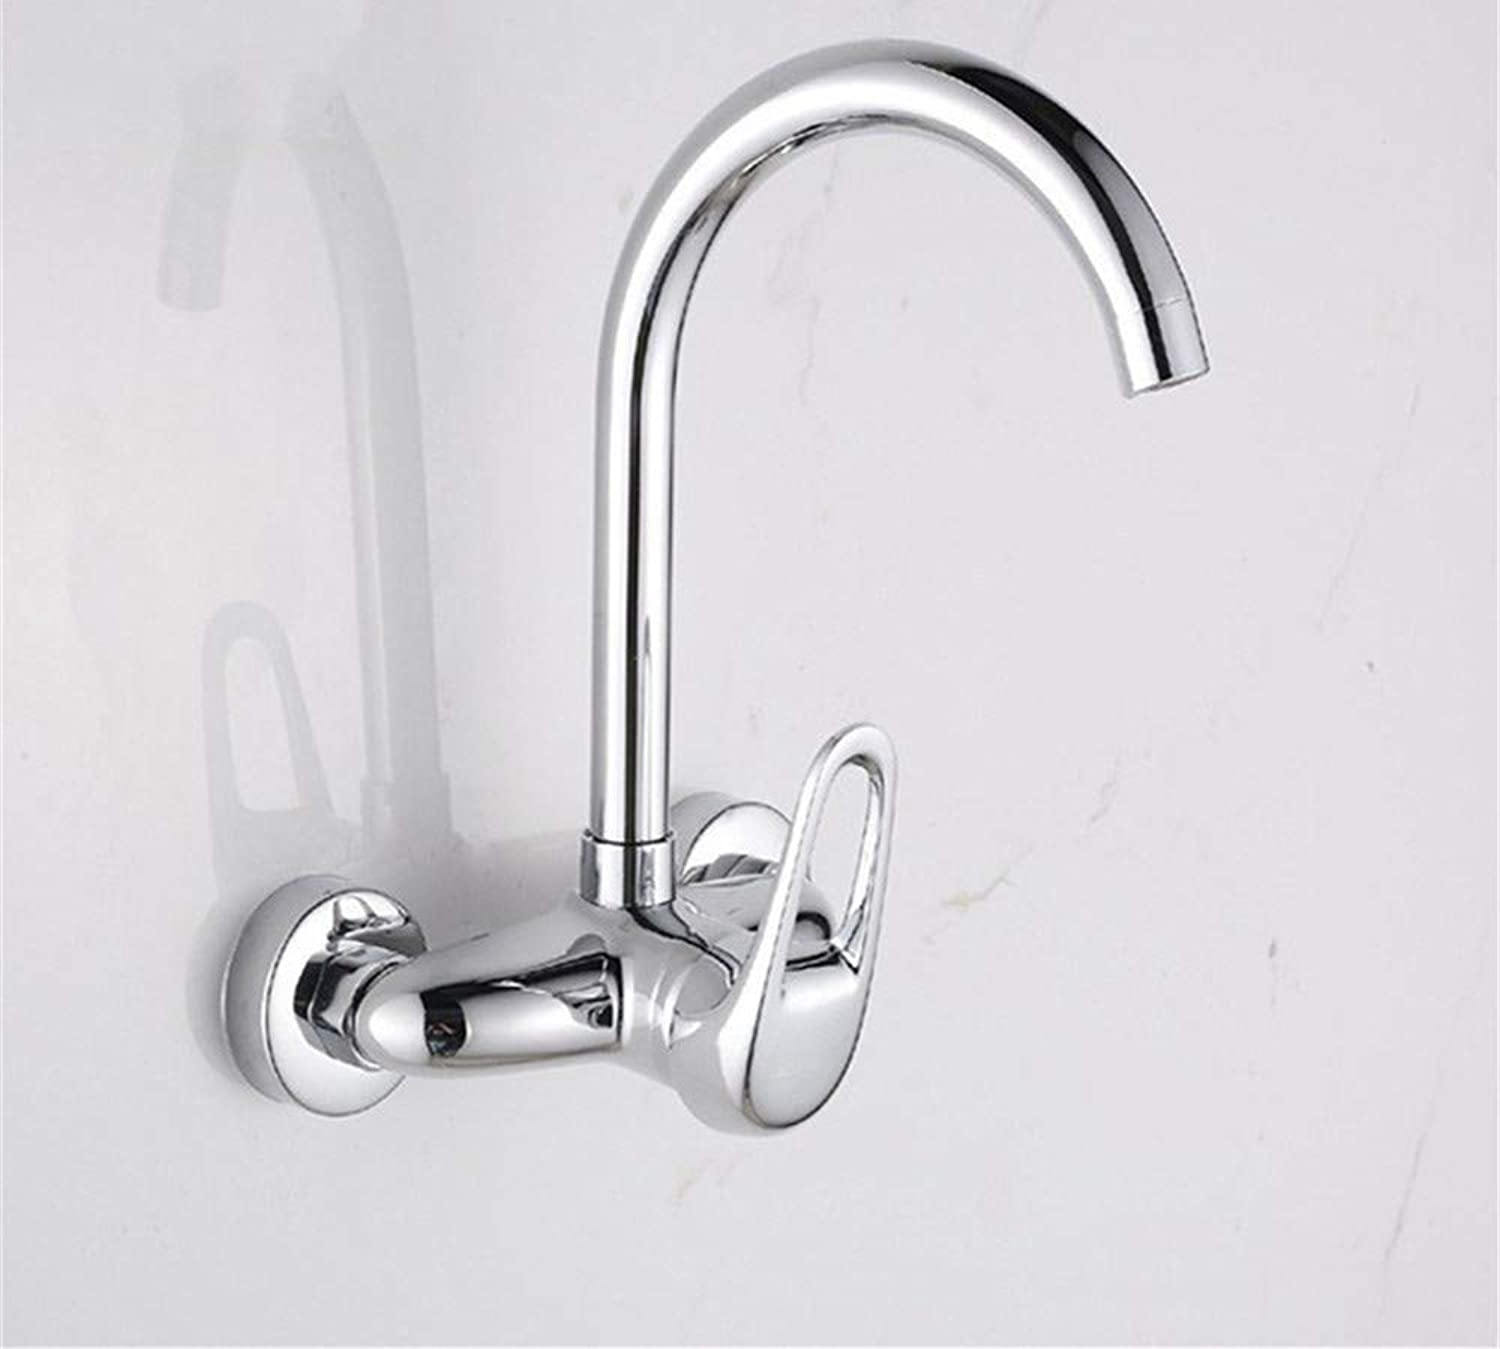 360° redating Faucet Retro Faucetkitchen Food Mixer Valve Mixer Whole Copper Balcony Wall Hanging Laundry Mop Pool Faucet